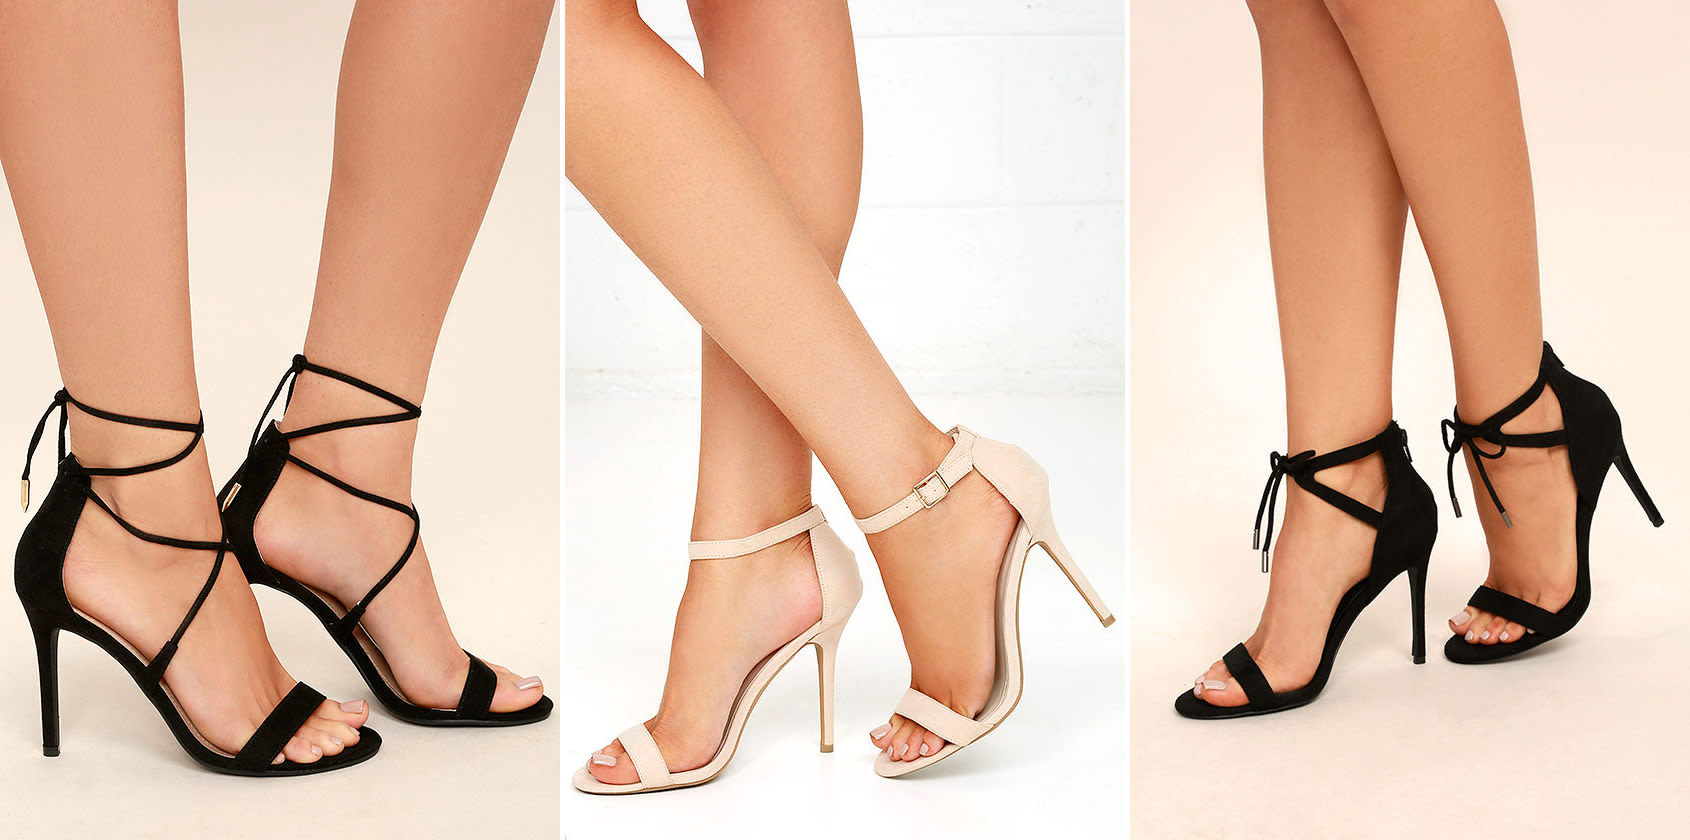 prom shoe styles - simple elegance